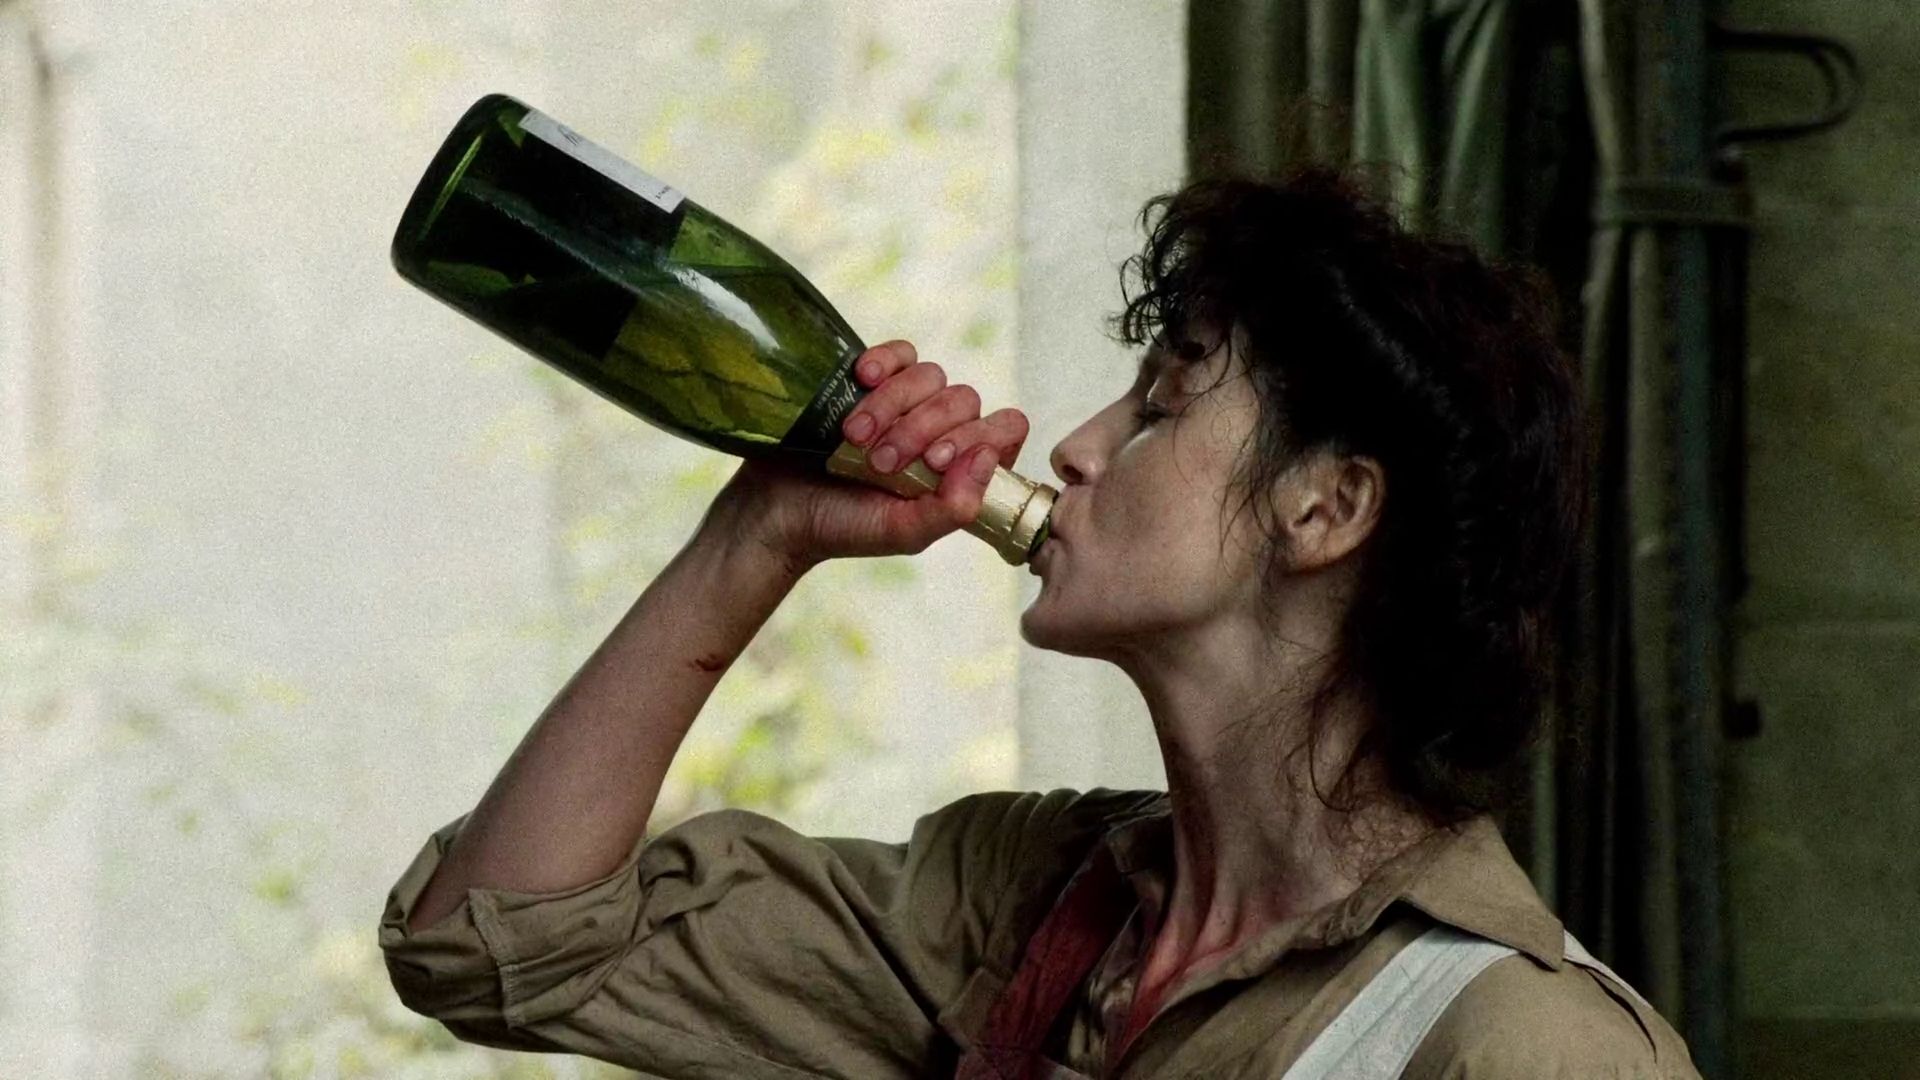 In the Outlander books there's a character that has malaria and Claire, f'ing genius, makes her own quinine. I think of that every time I take an antimalarial.